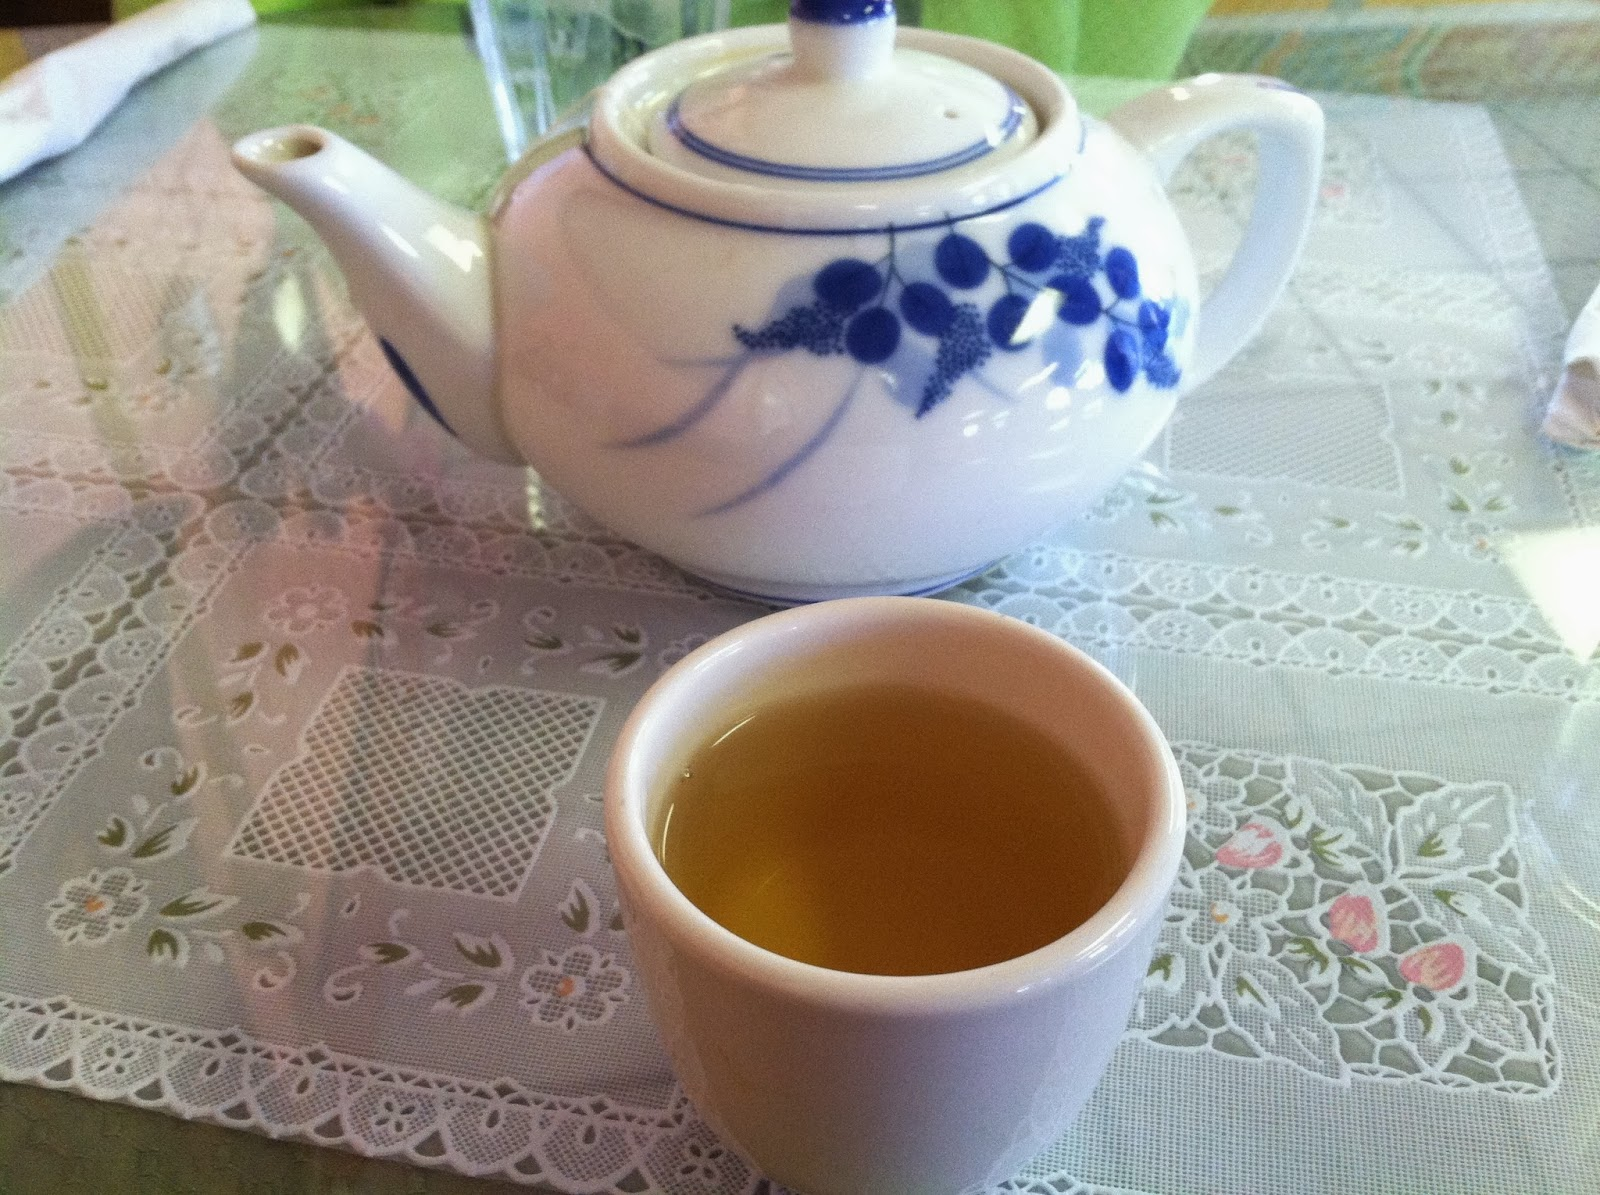 tea, green tea, teapot, teacup, asain